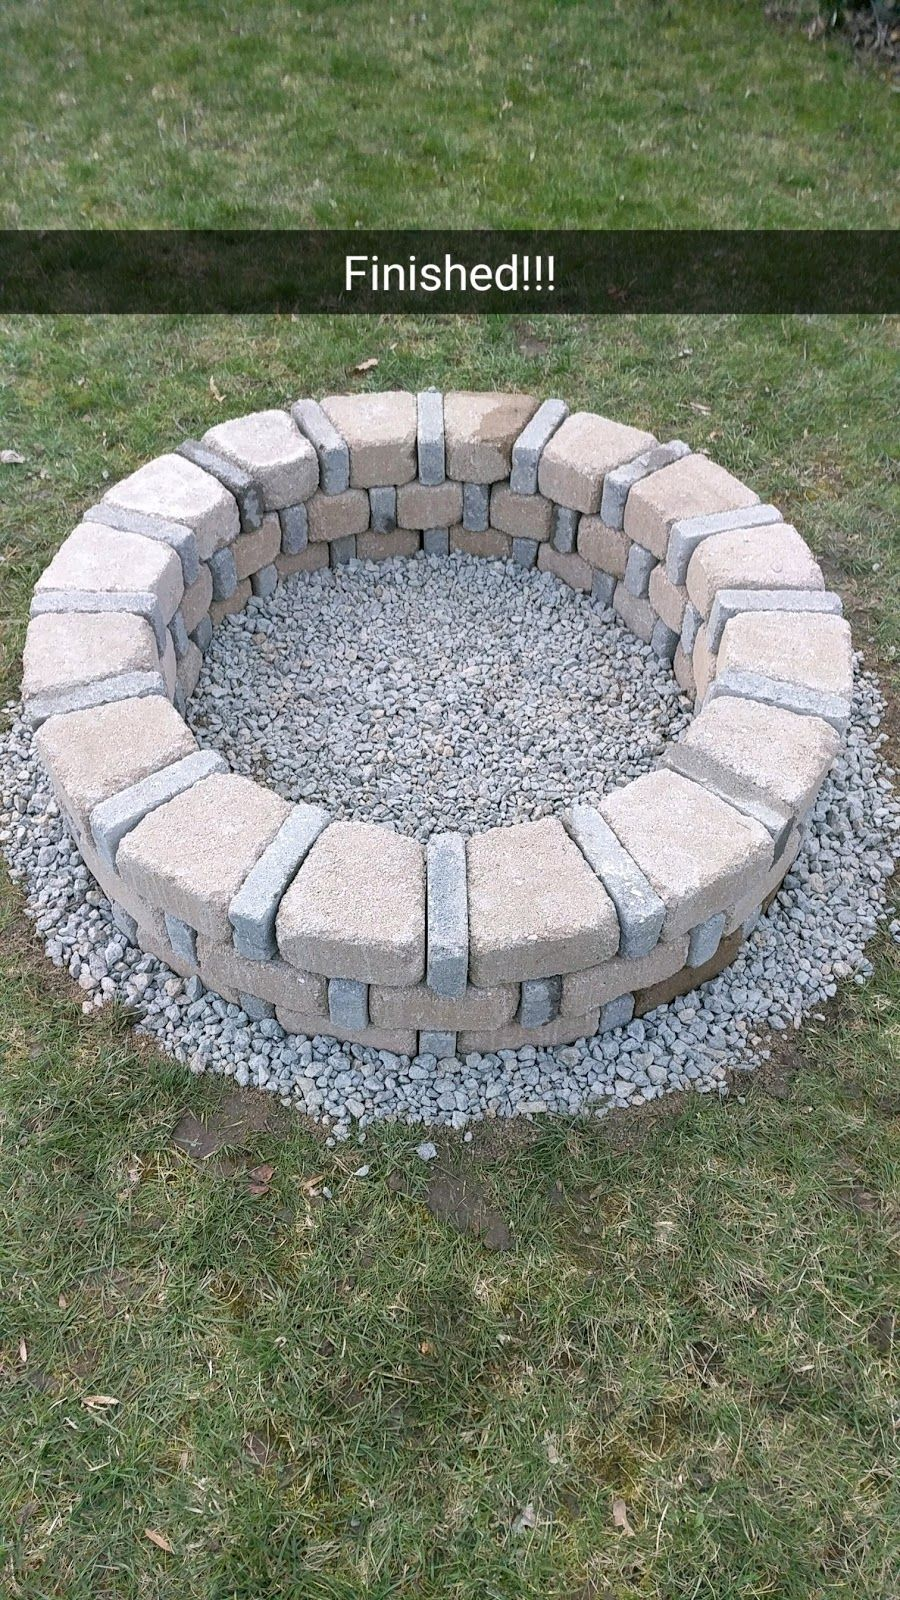 1b22b3070f9d My mother asked me to build her a brick fire pit that she had found on  Pinterest. I love DIY so I said yes and immediately started researchi.